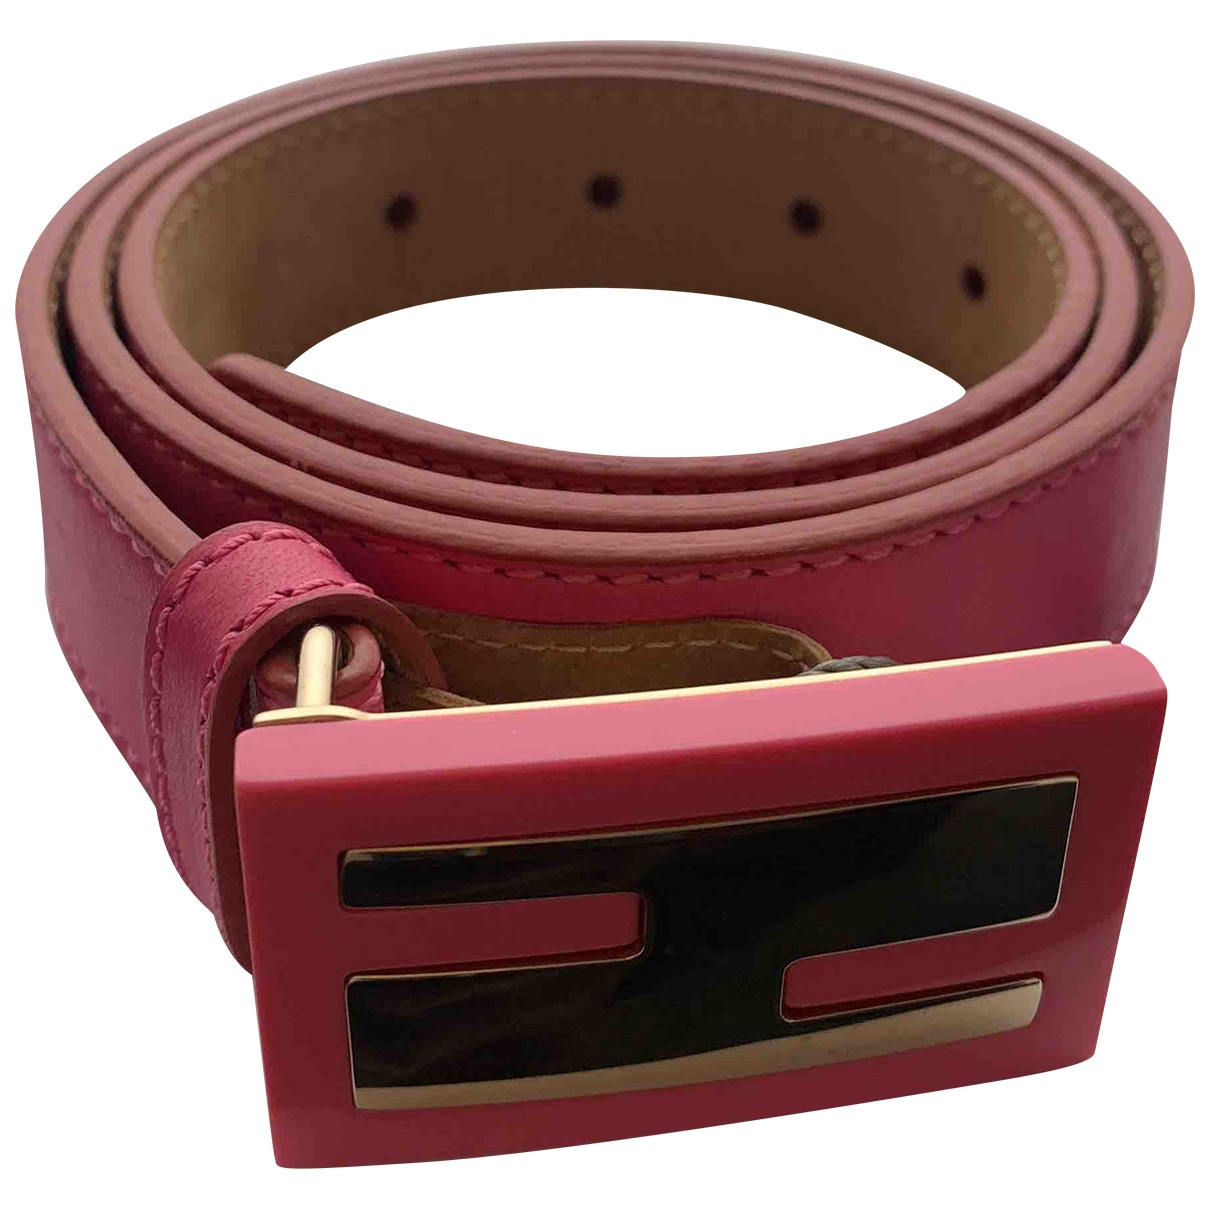 Fendi \N Pink Leather belt for Women 85 cm